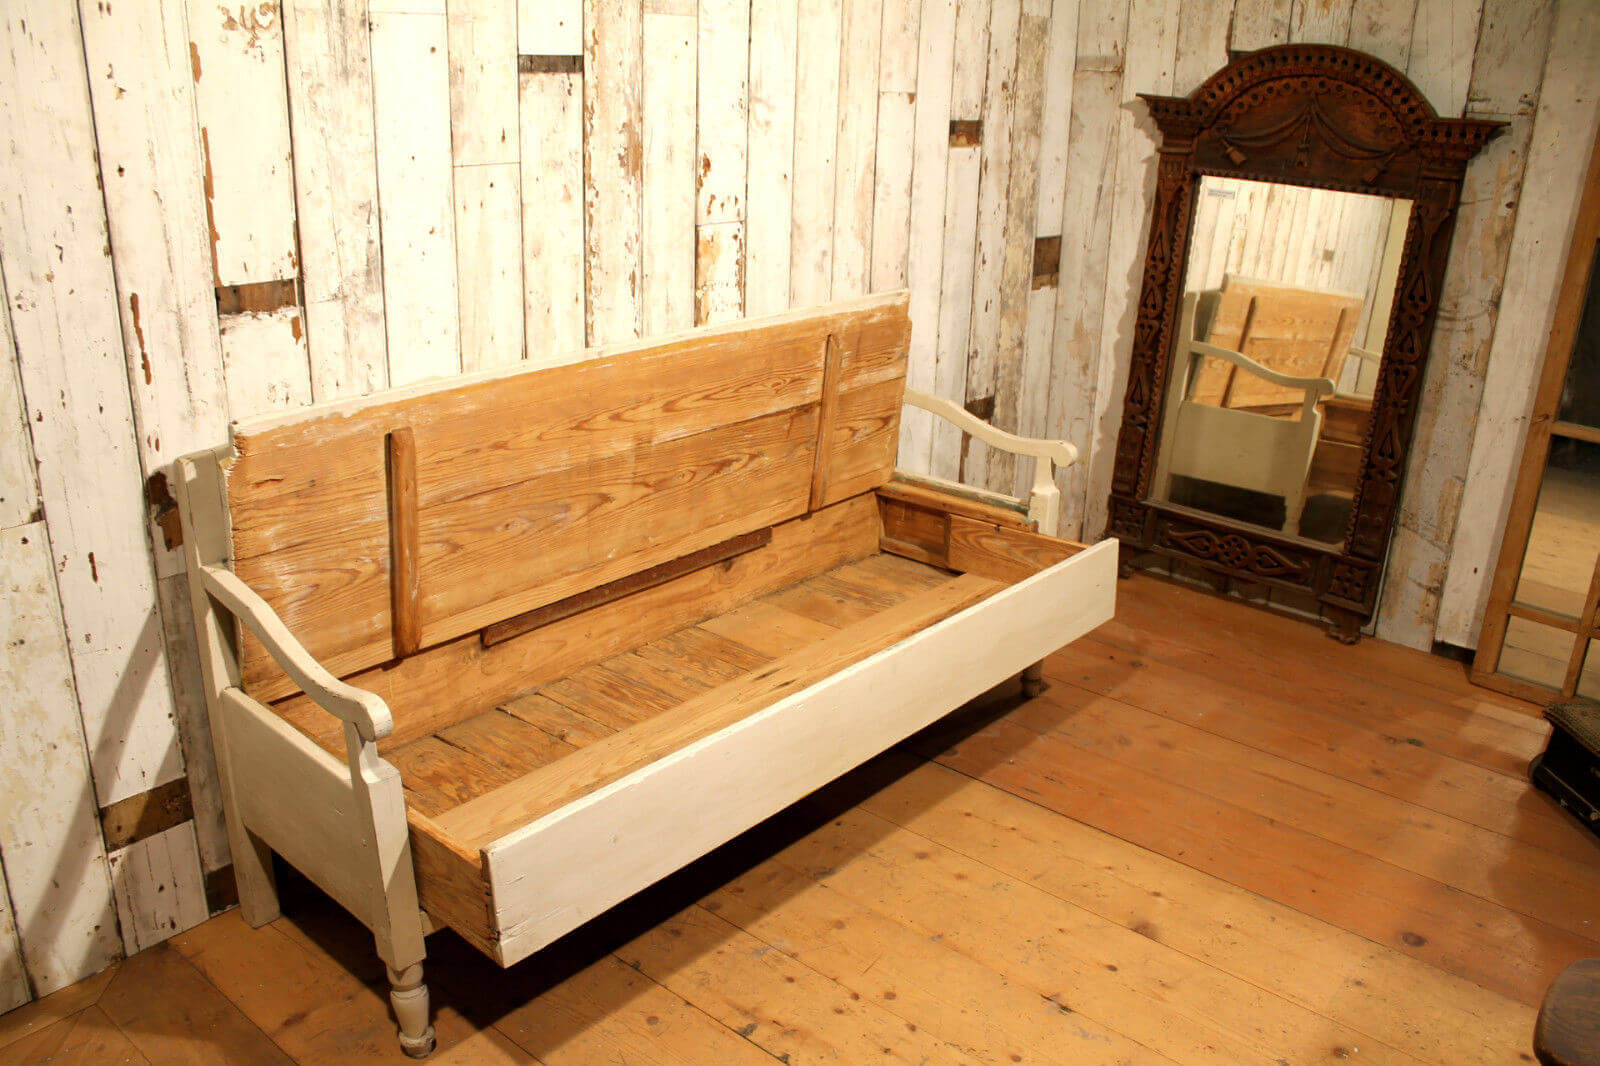 Original 19th Century European Hand Crafted Pine Box Bench